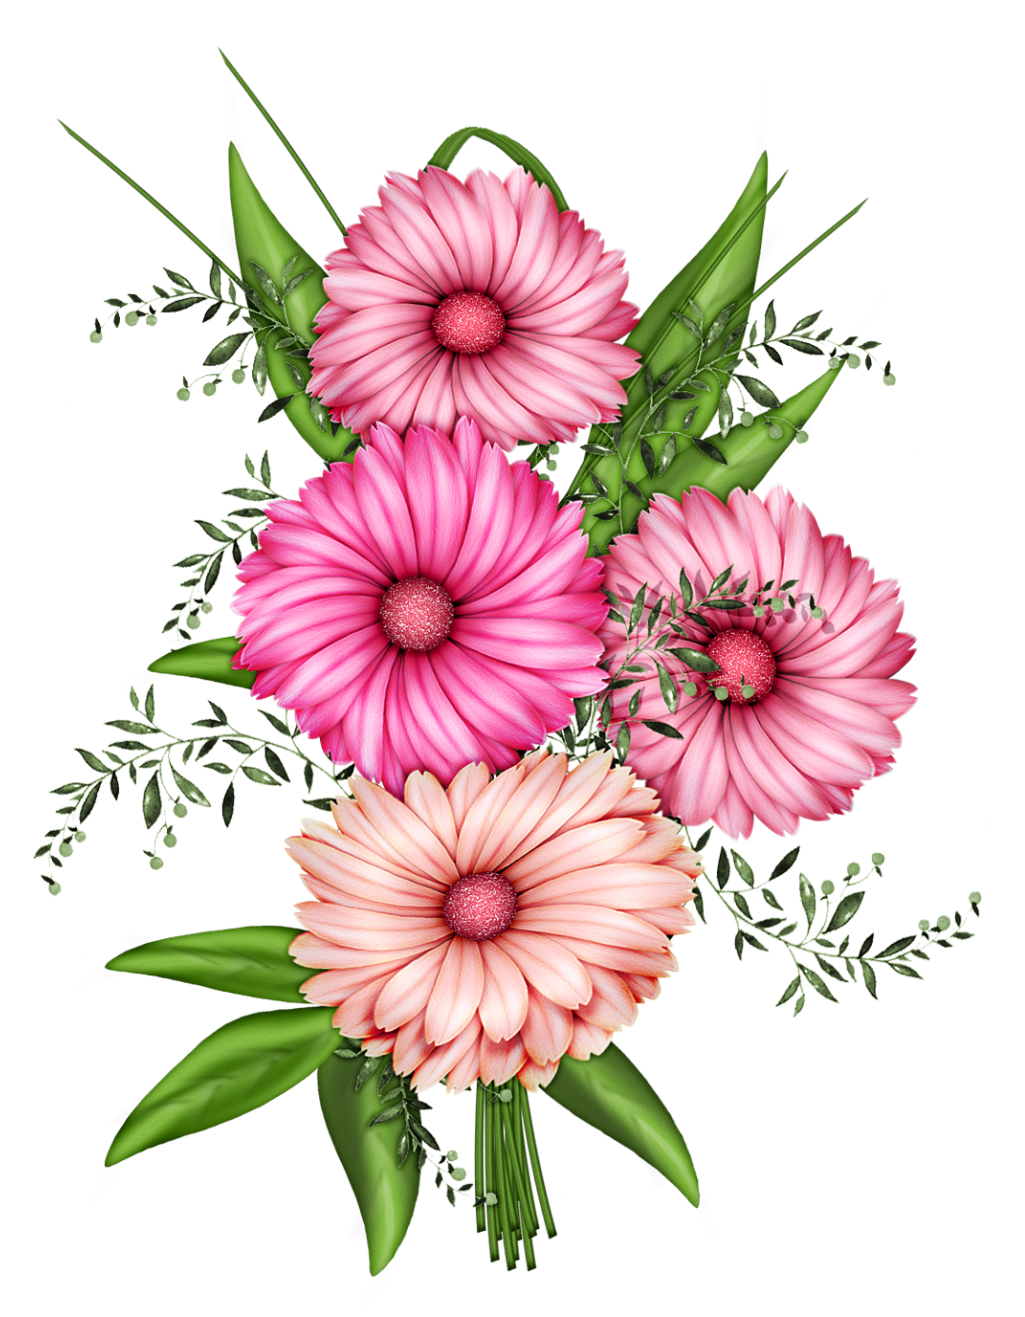 clipart royalty free stock Flowers png pinterest. Hydrangea clipart transparent background.